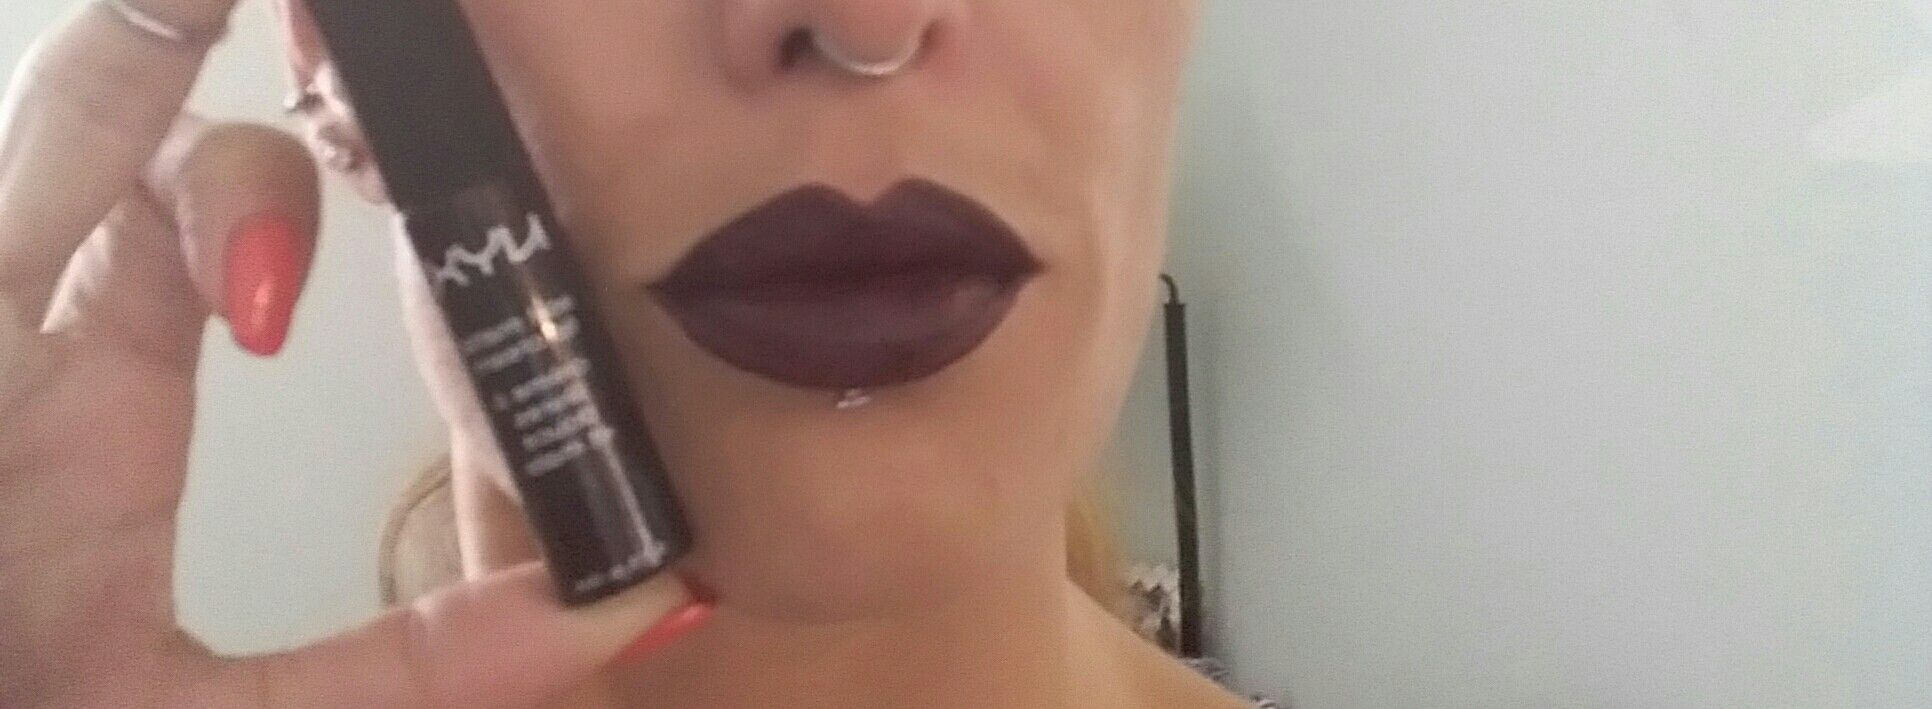 NYX soft matte lip cream:  SMLC21-Transylvania...I feel like Elvira! ;)  #nyxcosmetics #nyxsoftmattelipcream